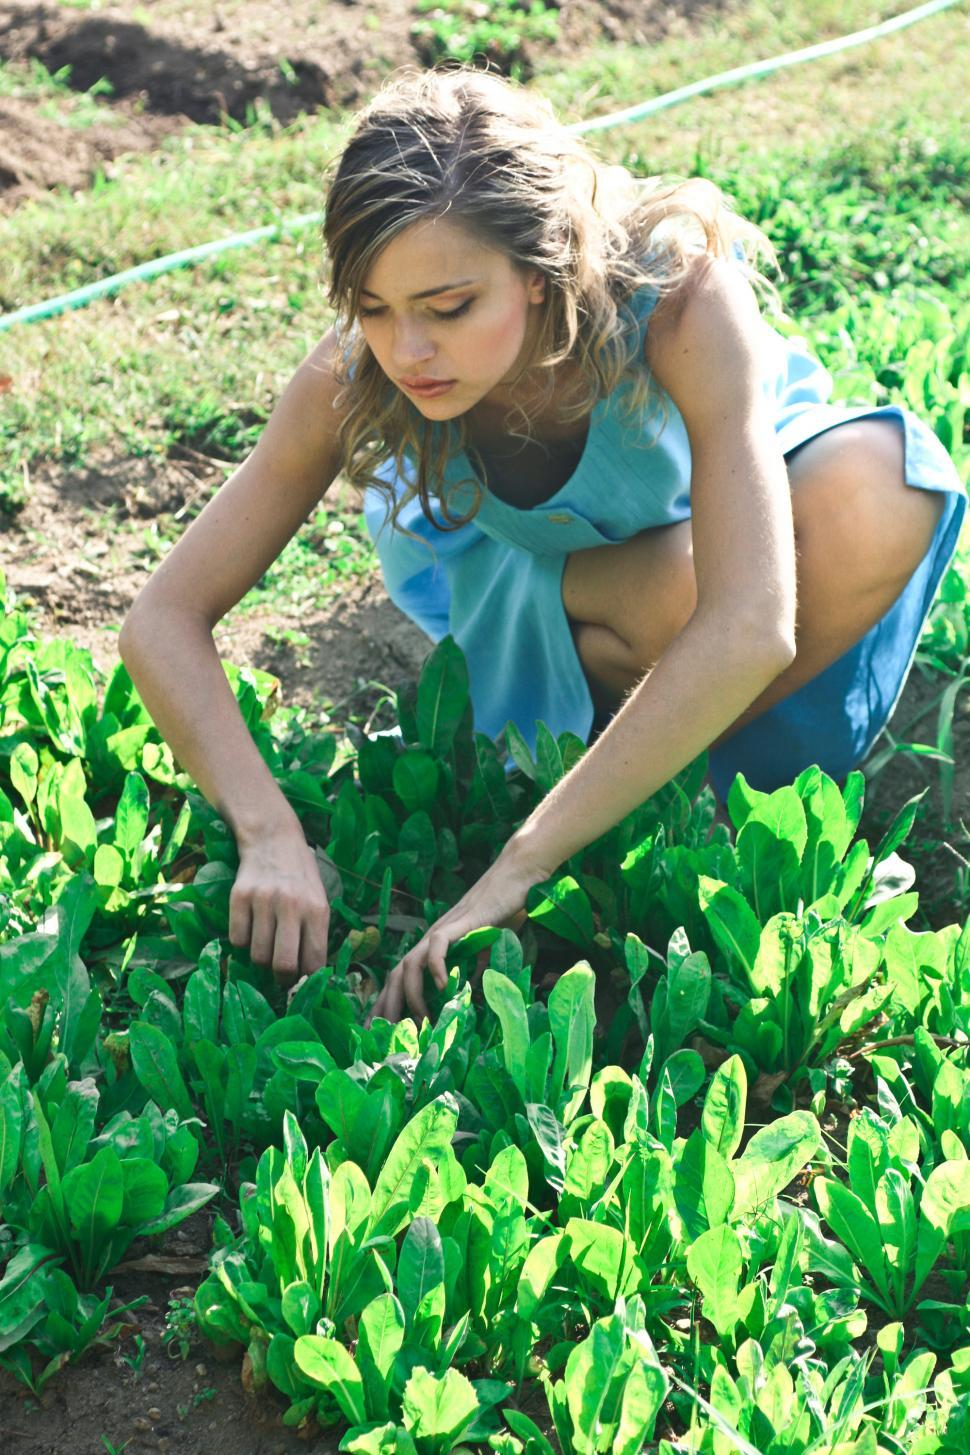 Download Free Stock Photo of A beautiful young woman plucking herbs in the farm